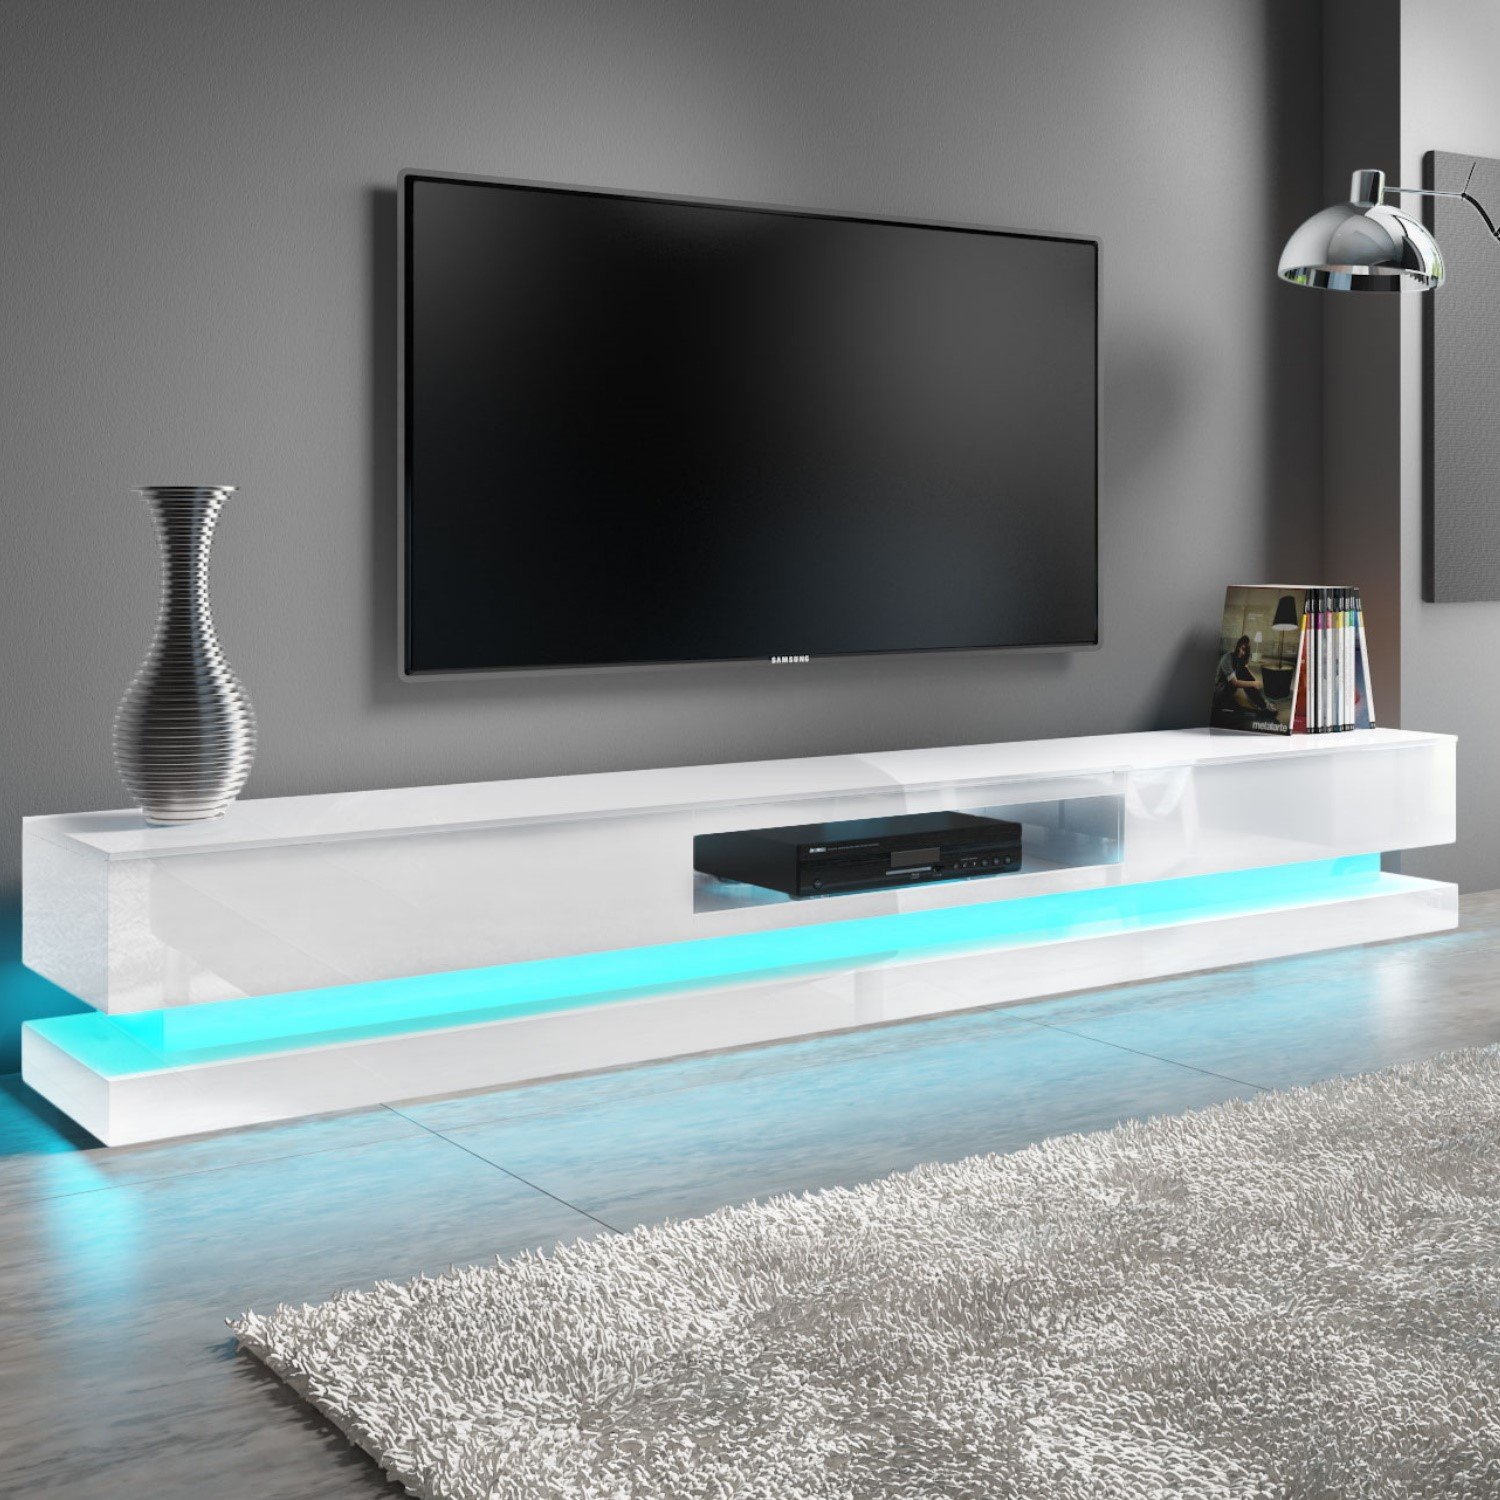 reputable site ac510 84441 Evoque XL White High Gloss TV Unit with LED Lighting - TV's up to 80